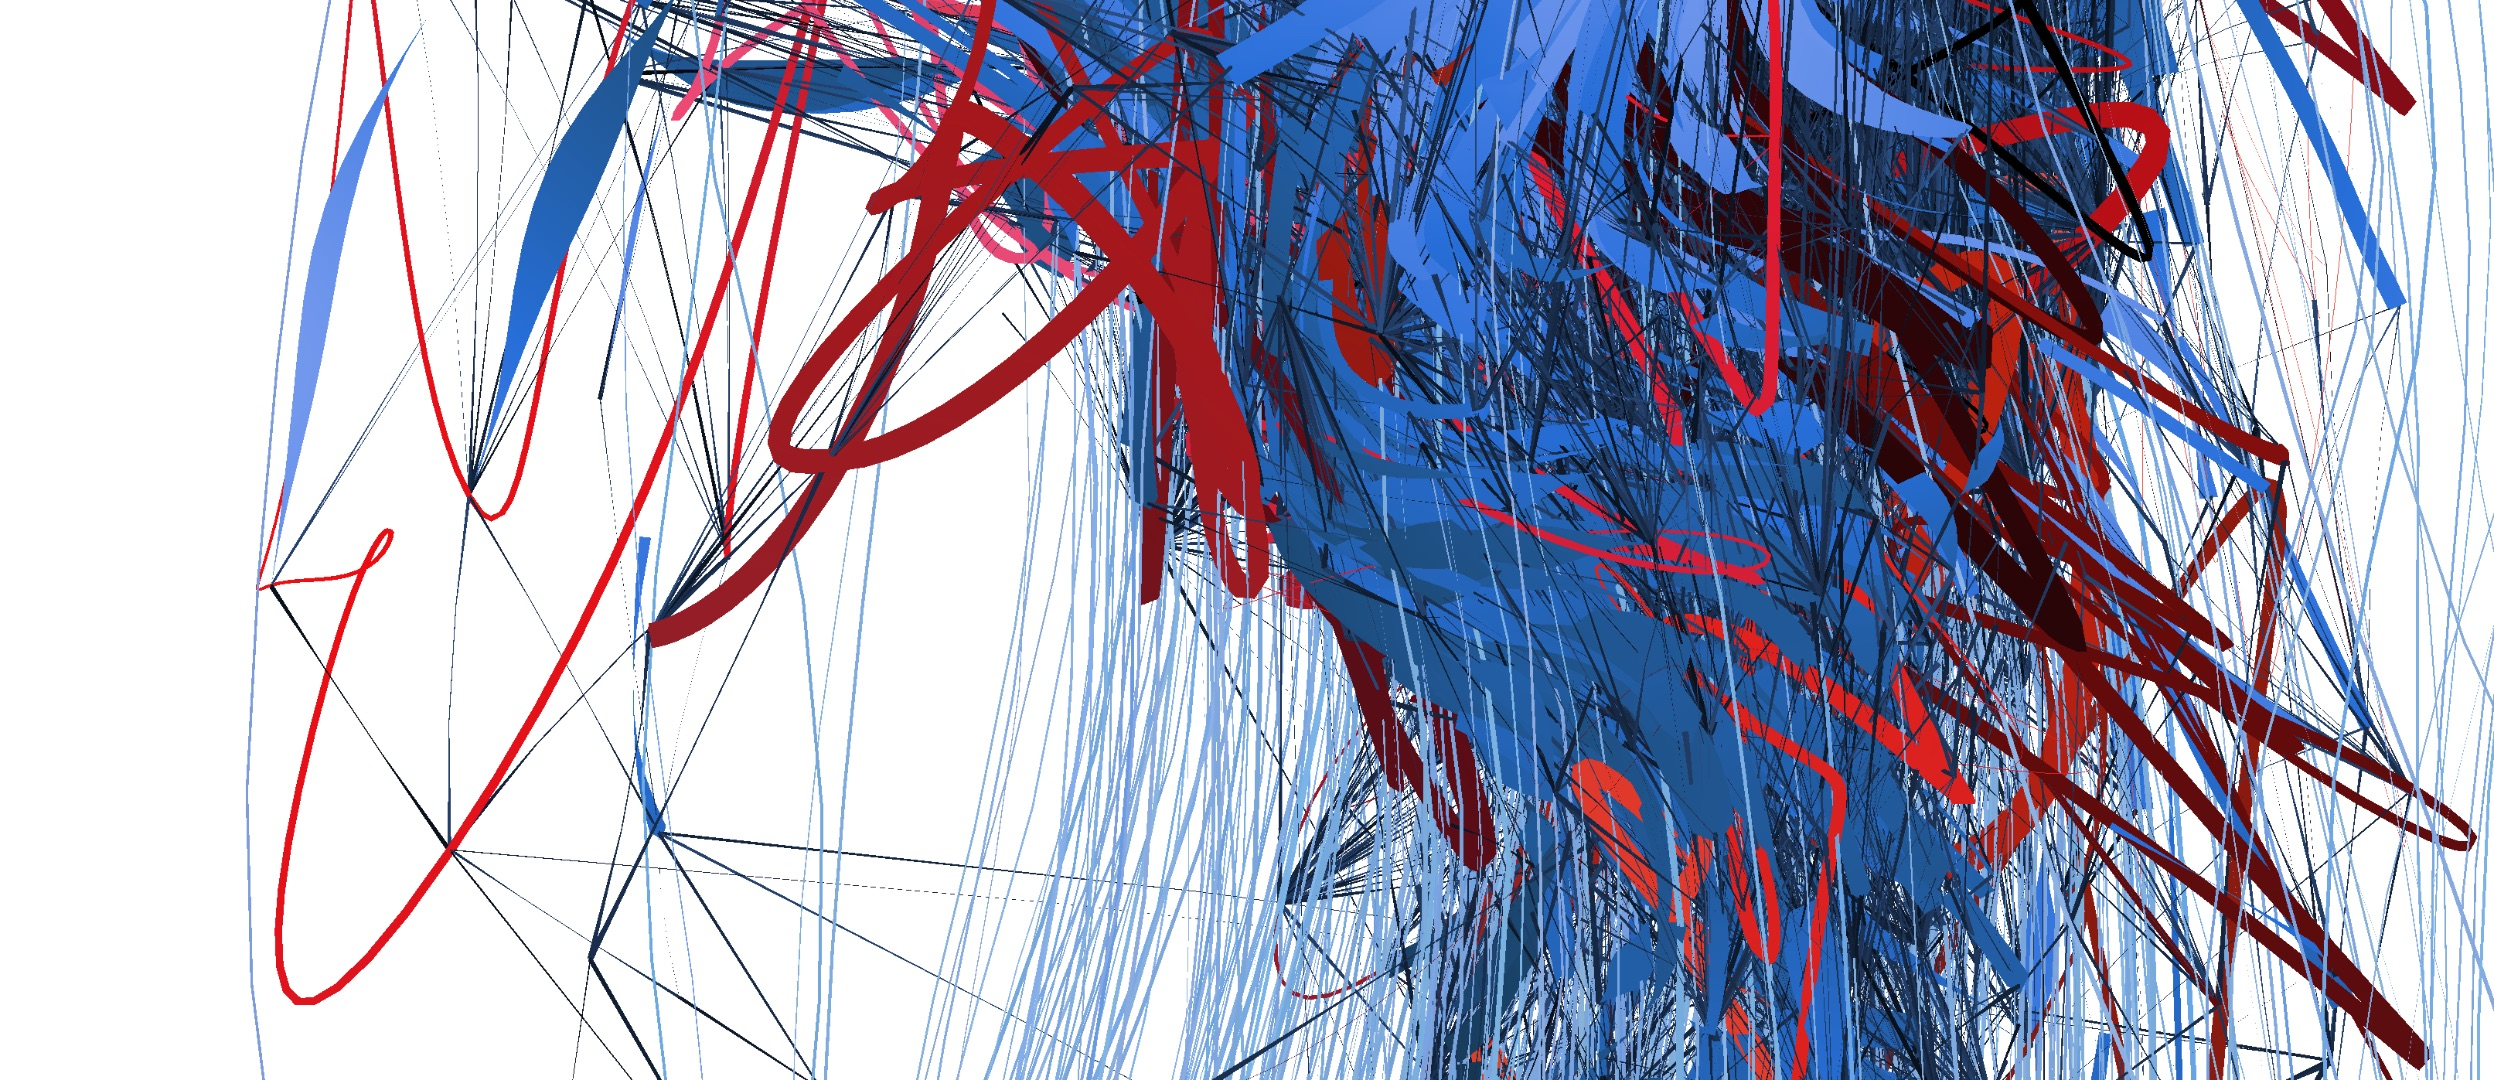 A detail of Facebook's graph in Unwelcome Gaze. Thin darker lines represent the actual routing graph, while thicker ones (blue and red) are painted layers of perception obscuring the actual data.